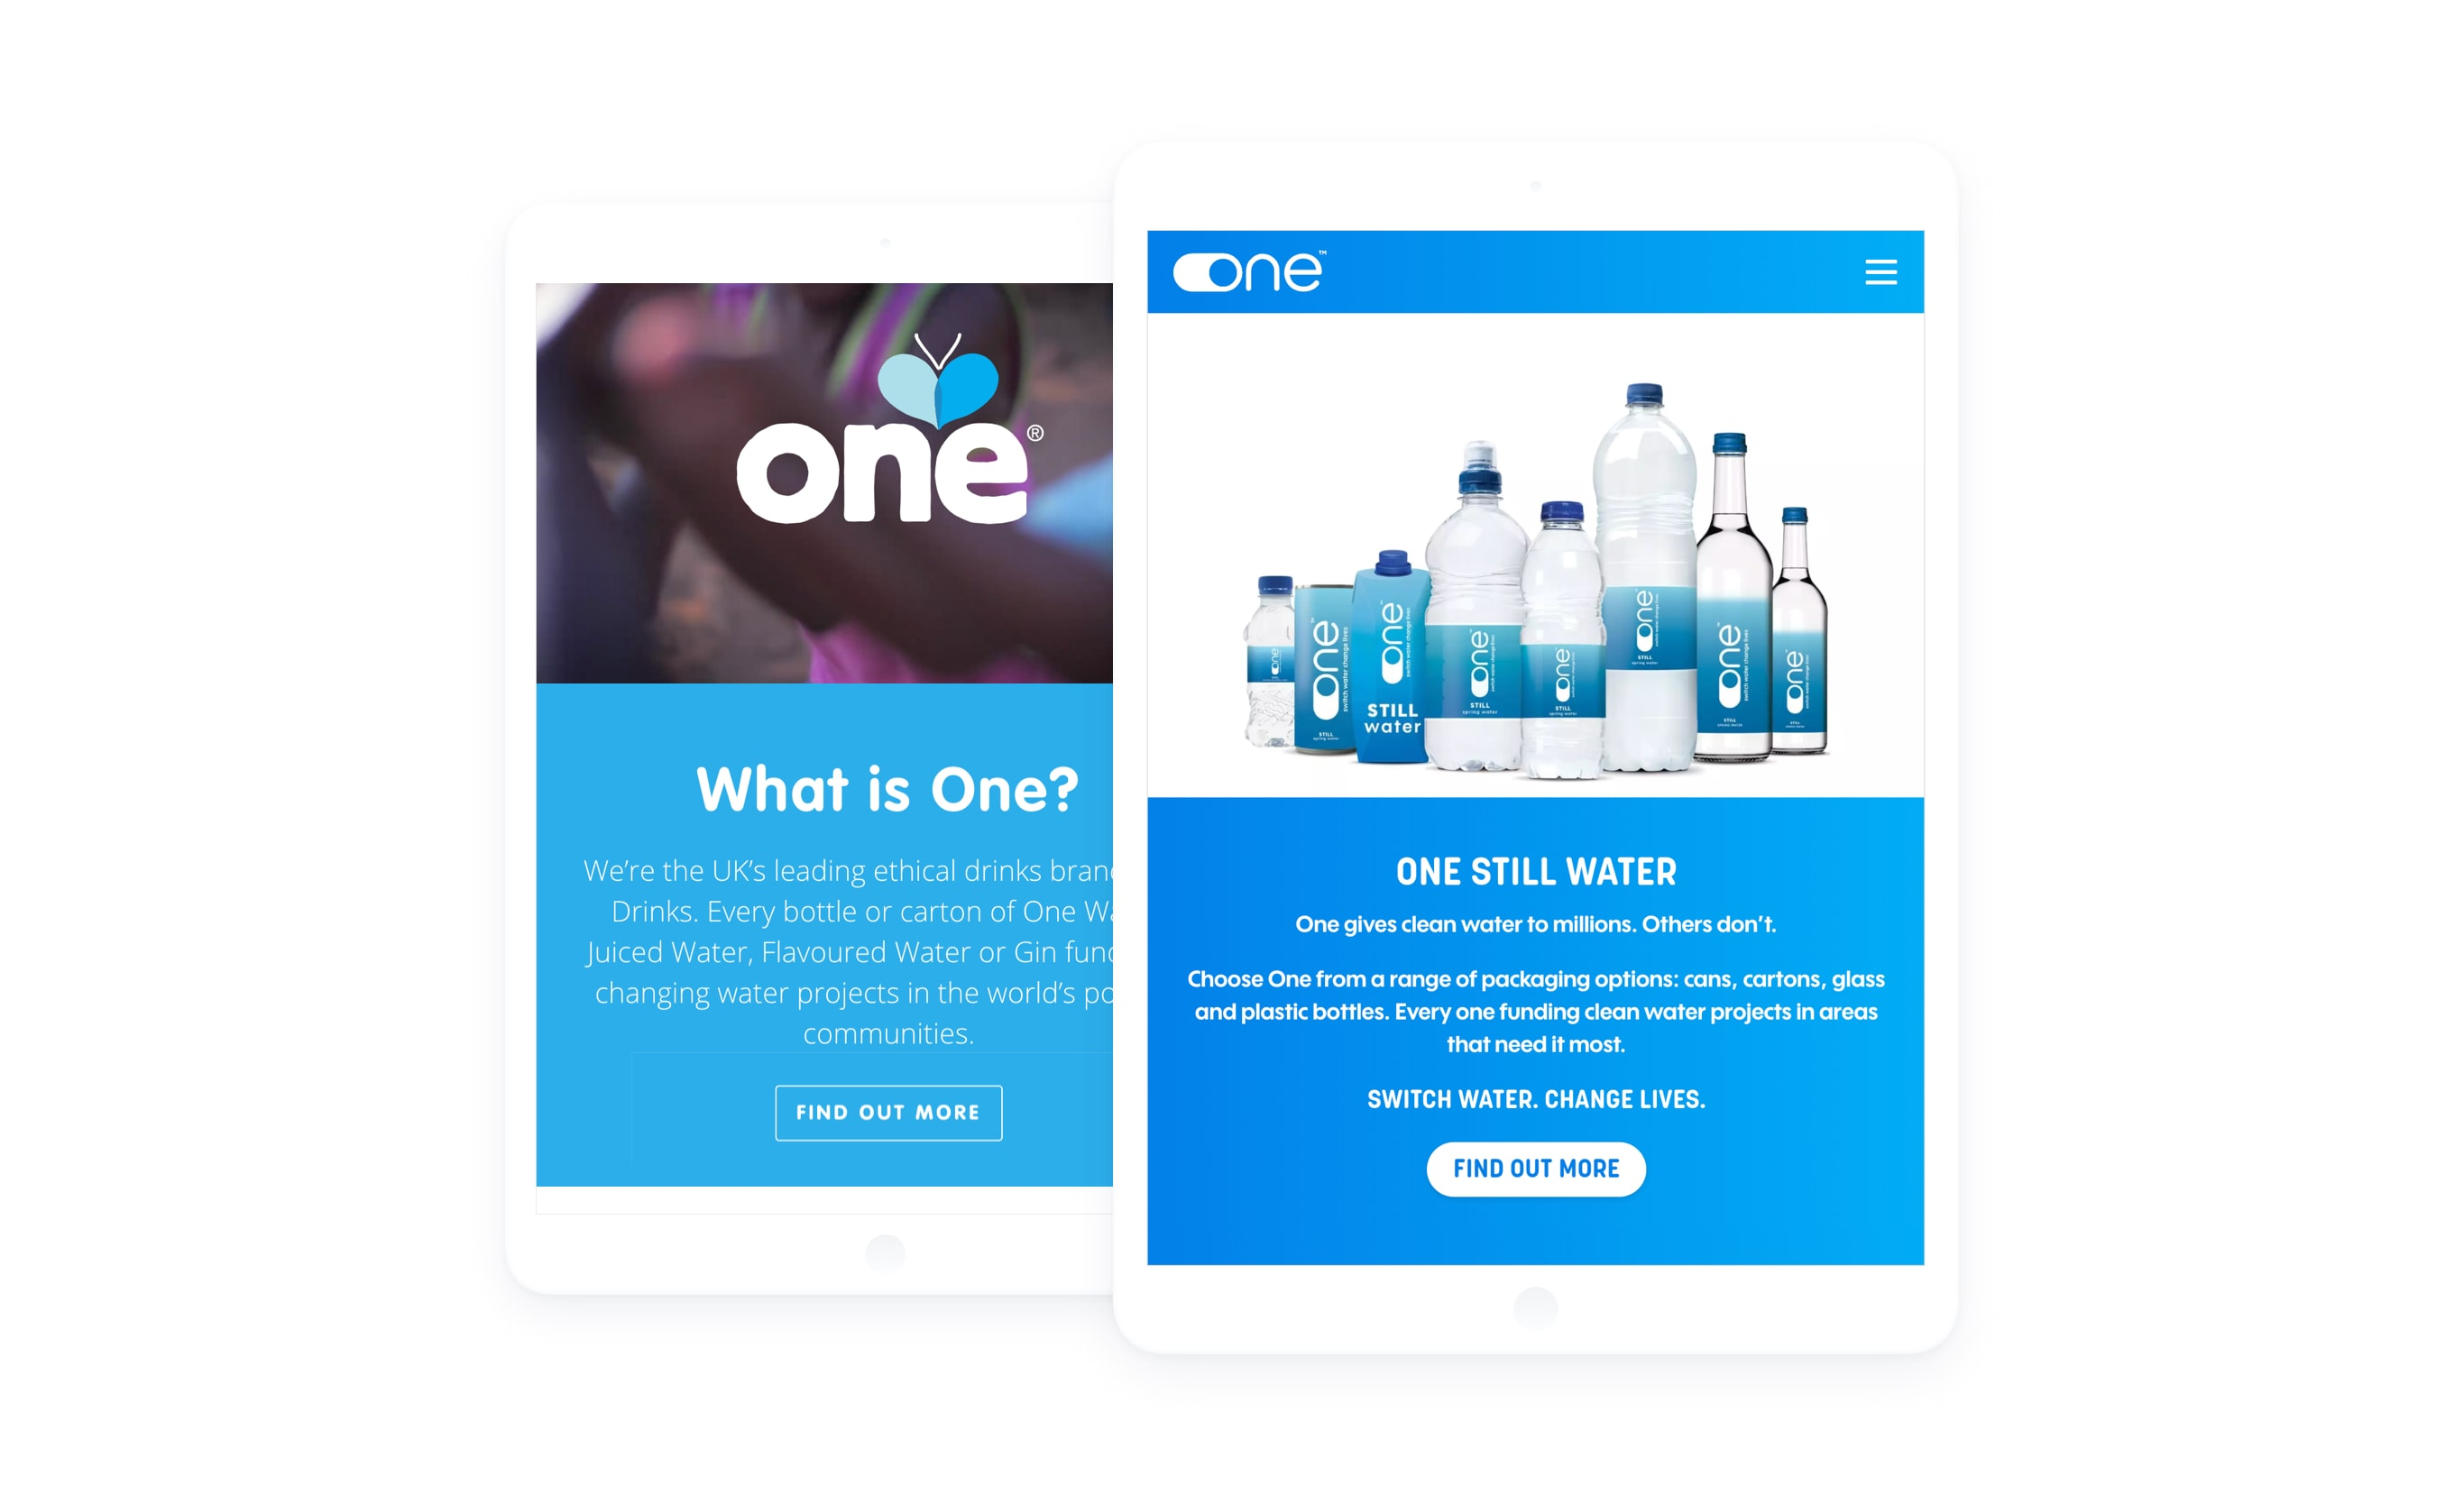 Two tablet, each showing the one water homepage. The one on the left has the old design and the one on the right shows the new website